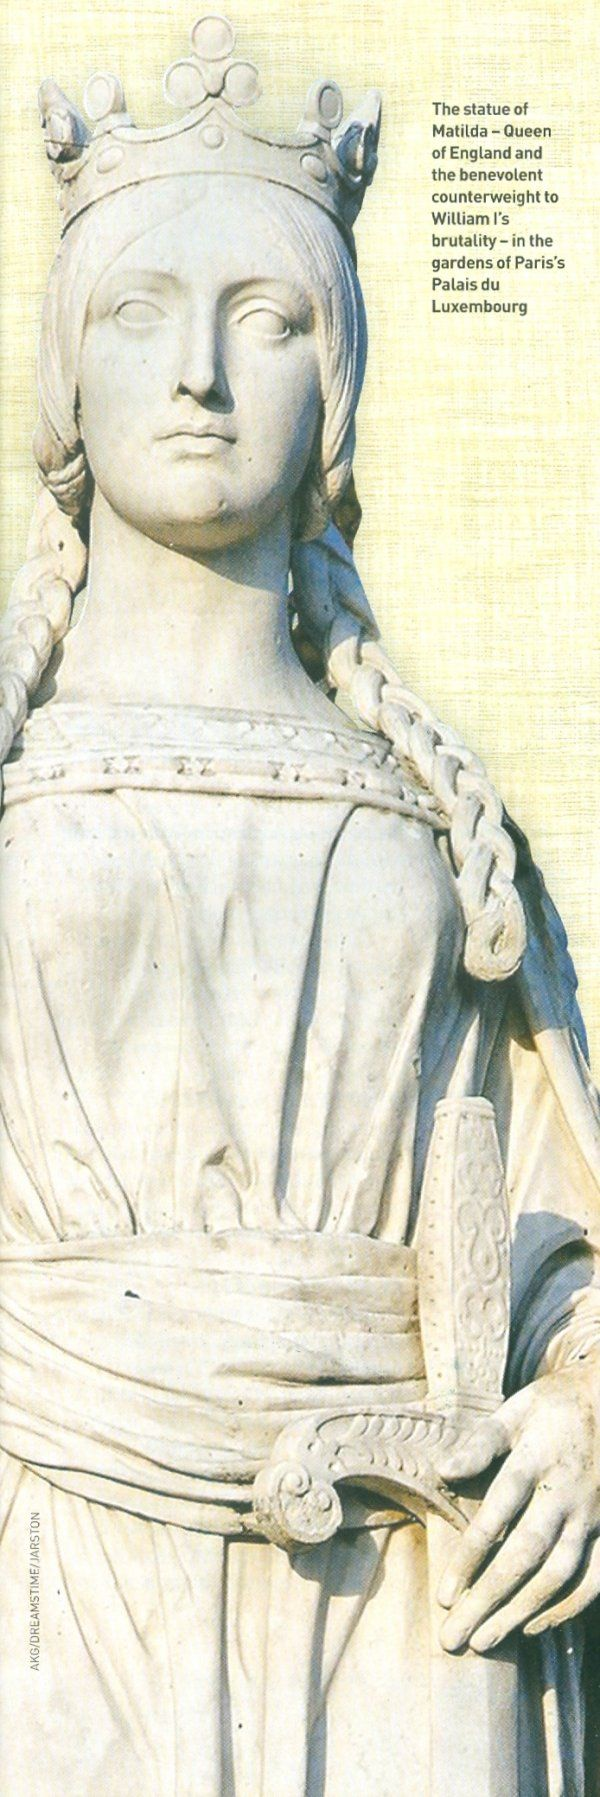 Statue of Matilda of Flanders - Queen Consort of England and wife of William the Conqueror in the Luxembourg Gardens in Paris, France. http://www.travellinghistorian.com/conquerp3m.jpg